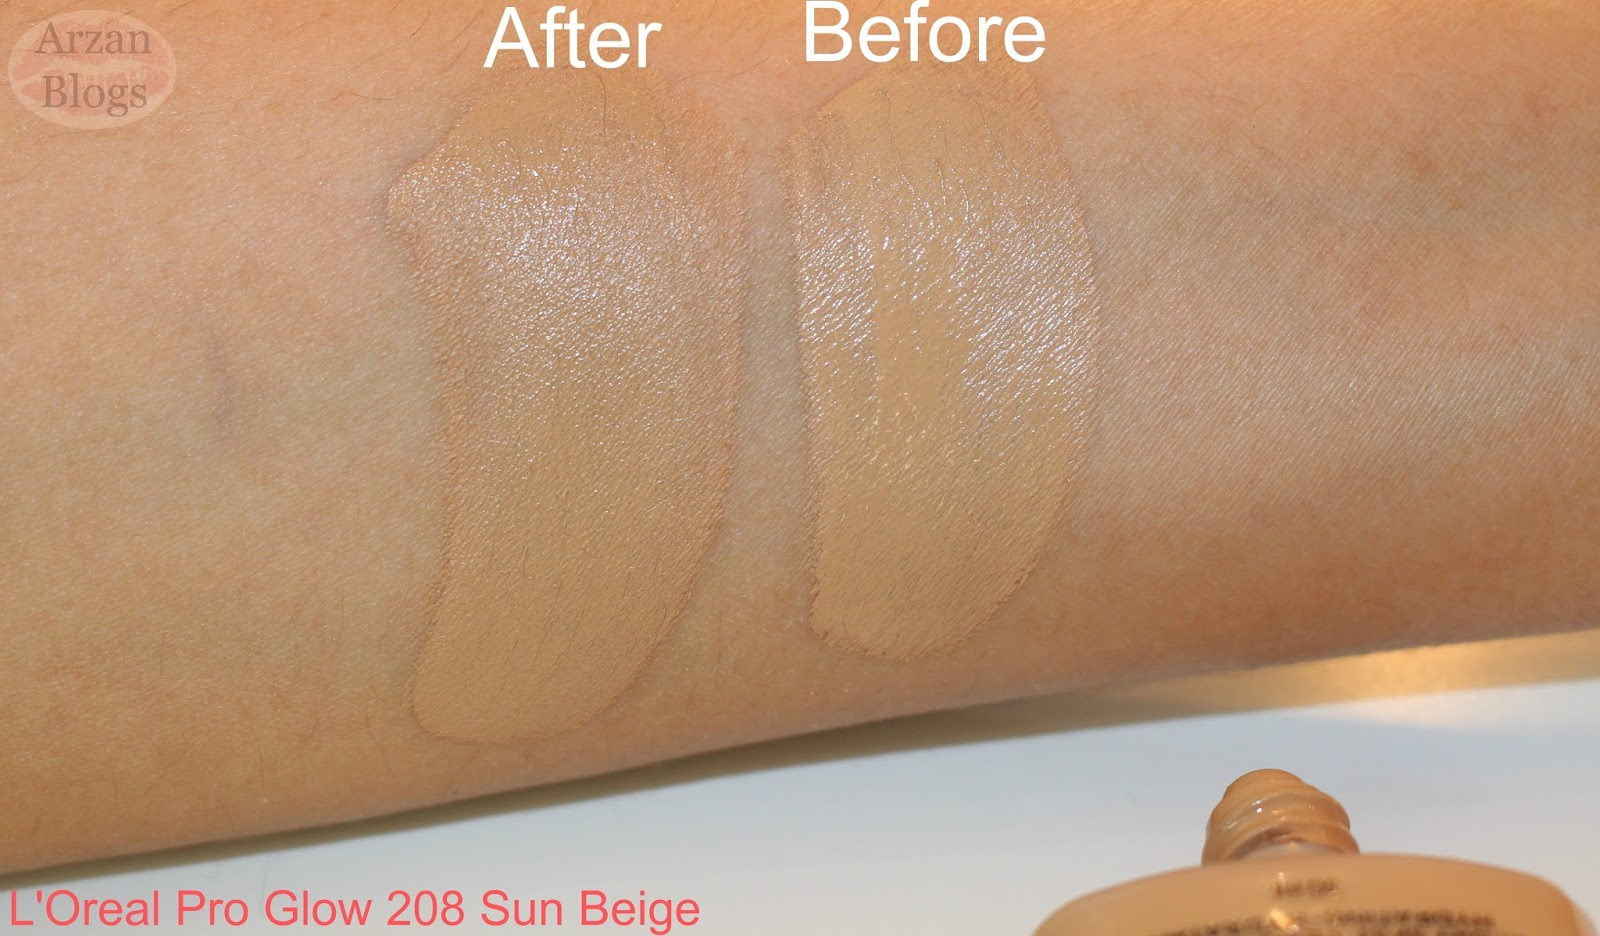 Infallible Pro-Glow Foundation by L'Oreal #5